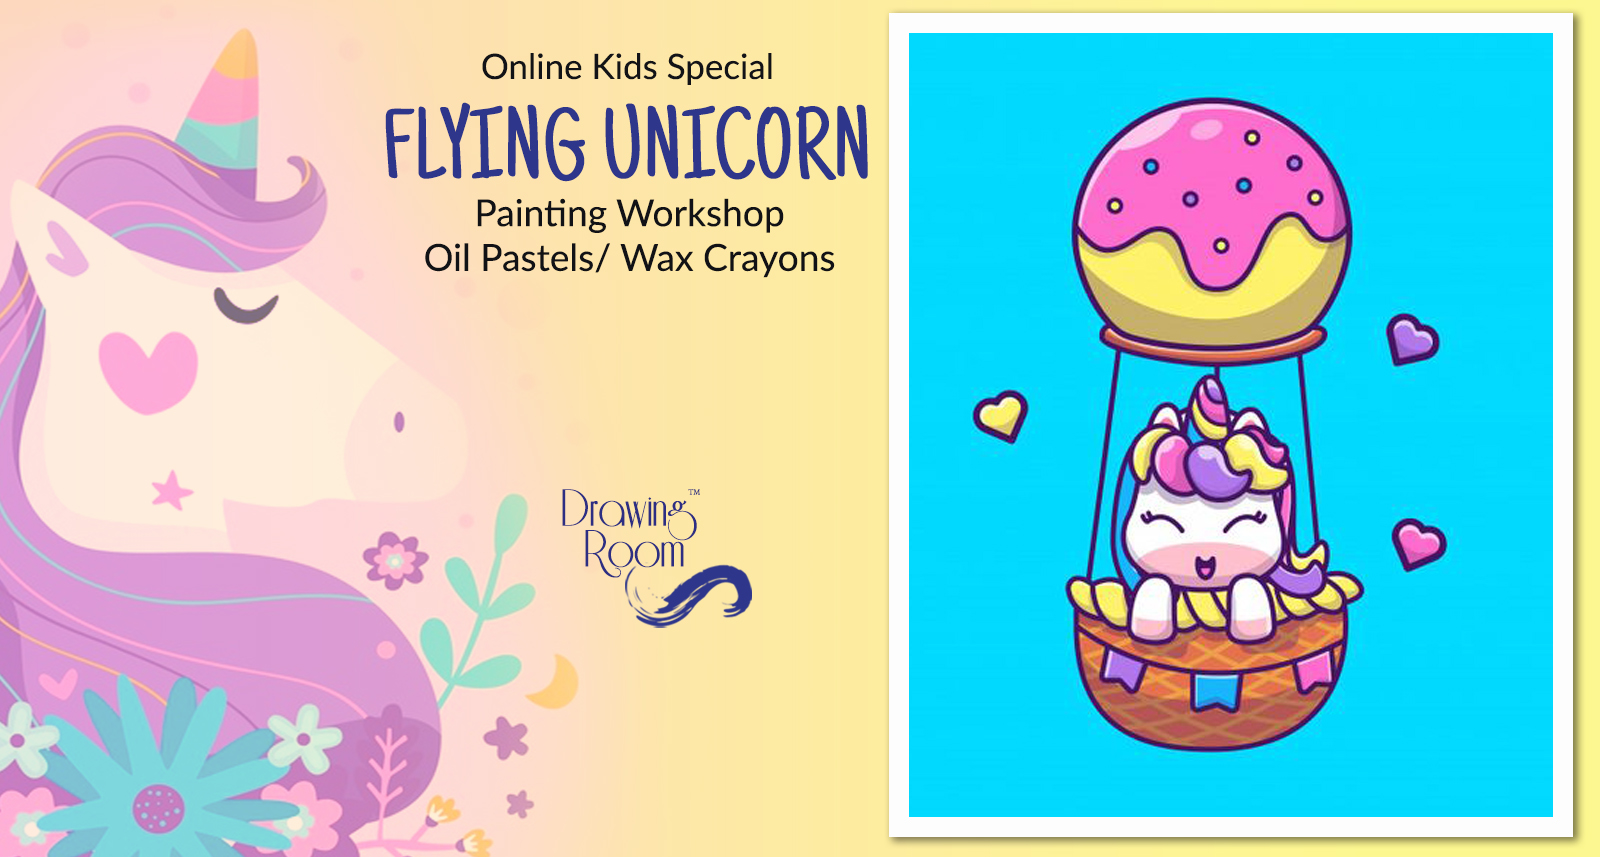 Online Kids Special Flying Unicorn Painting Workshop